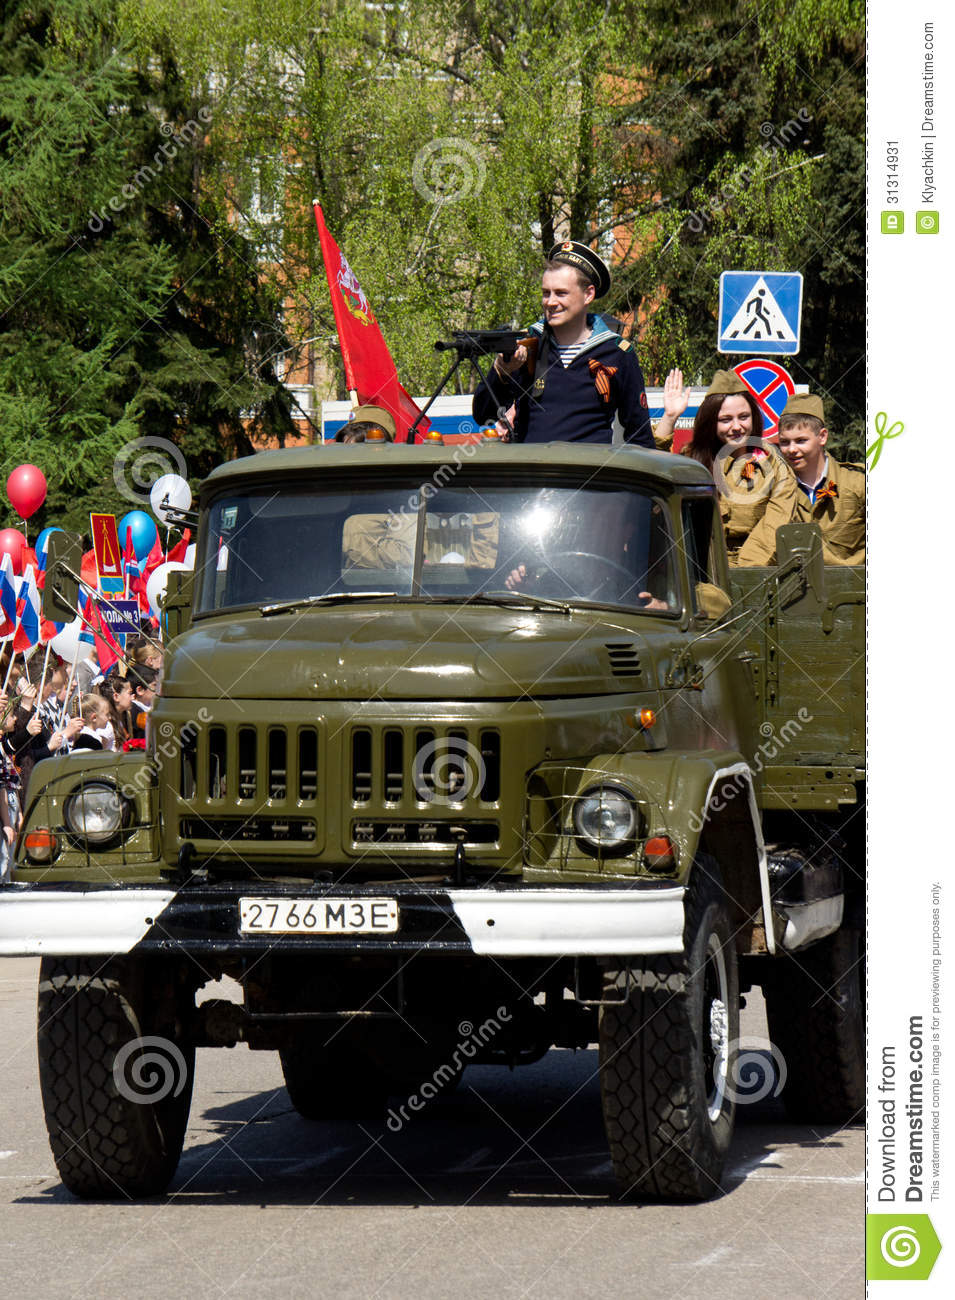 Military zil-131 with the actors in the form of the great patriotic